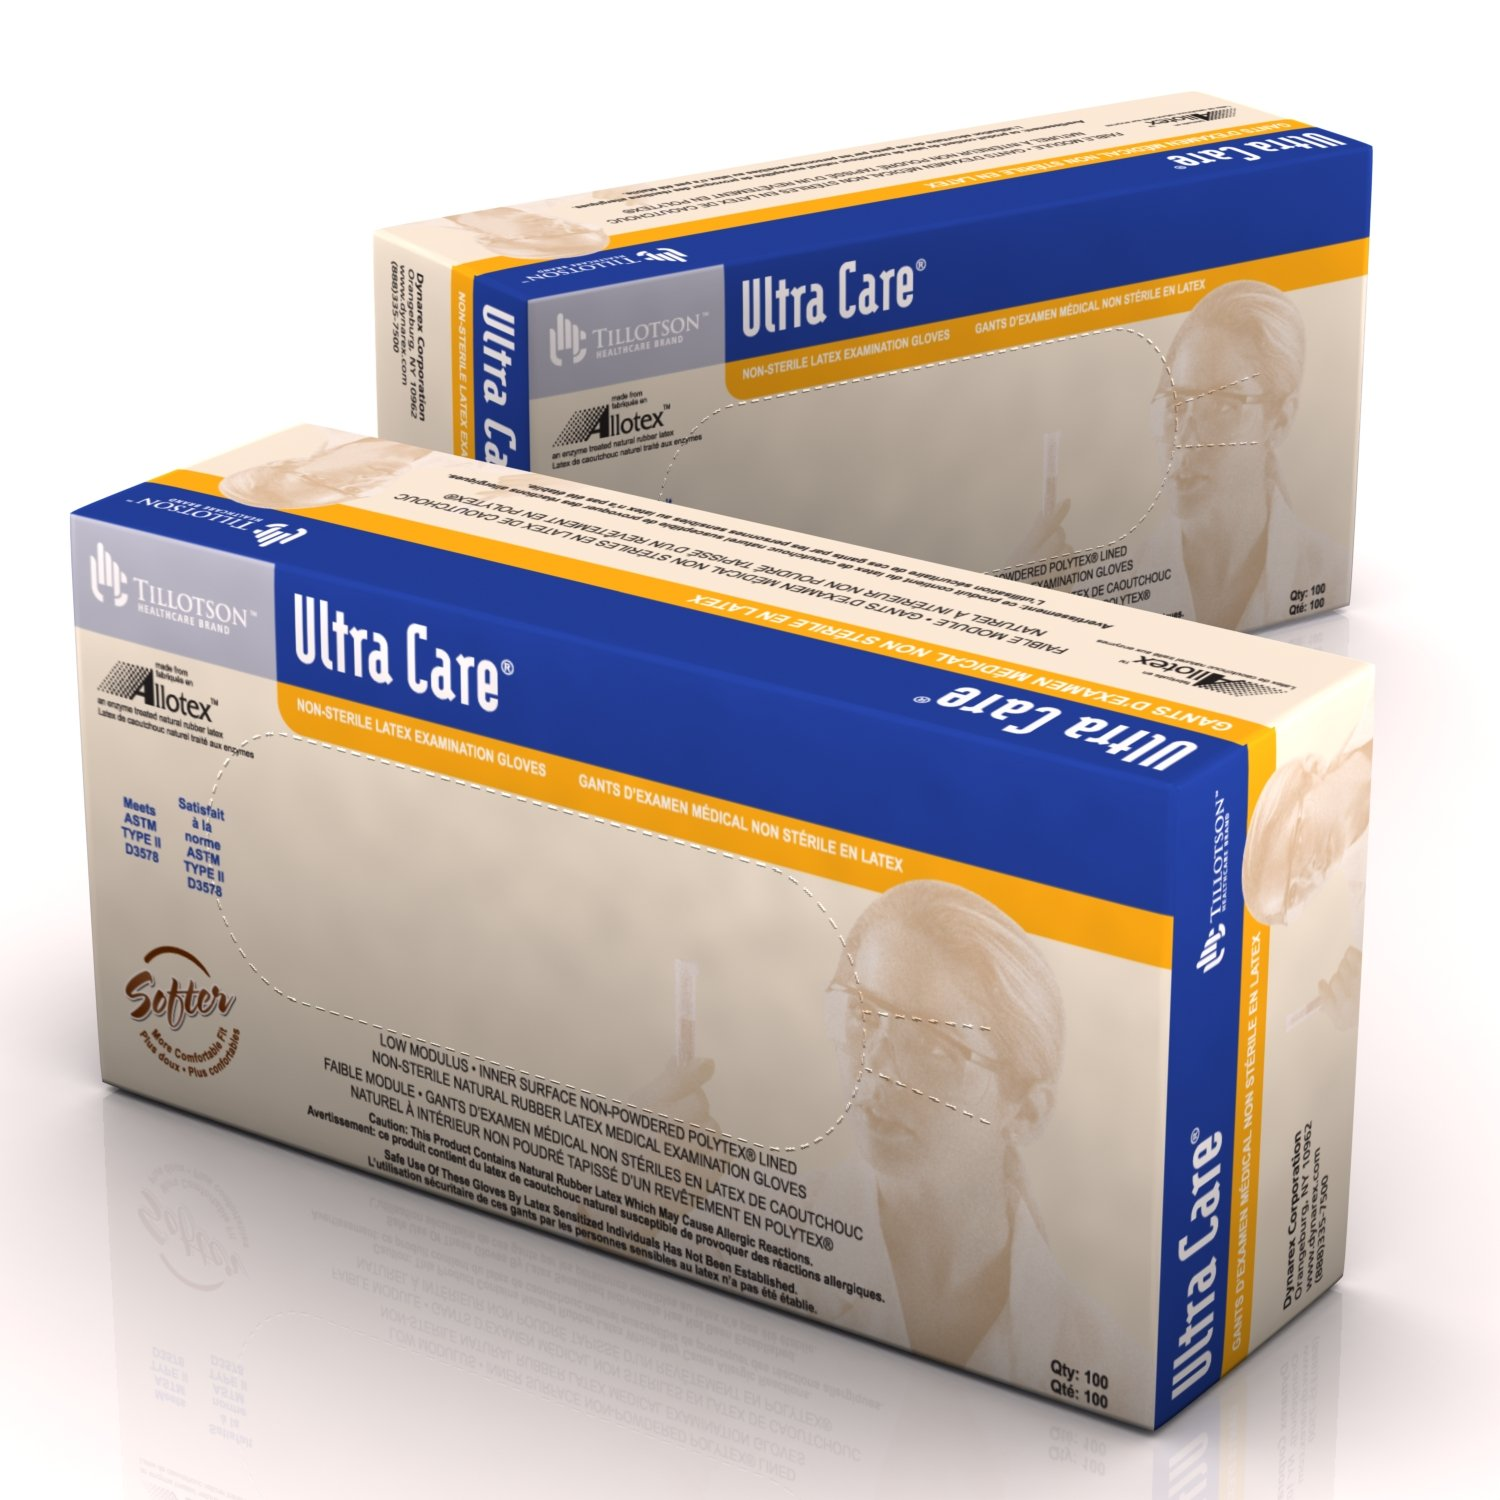 Dynarex Ultra Care Latex Exam Gloves Non-Sterile Unisize 10/100/Cs by Dynarex (Image #1)